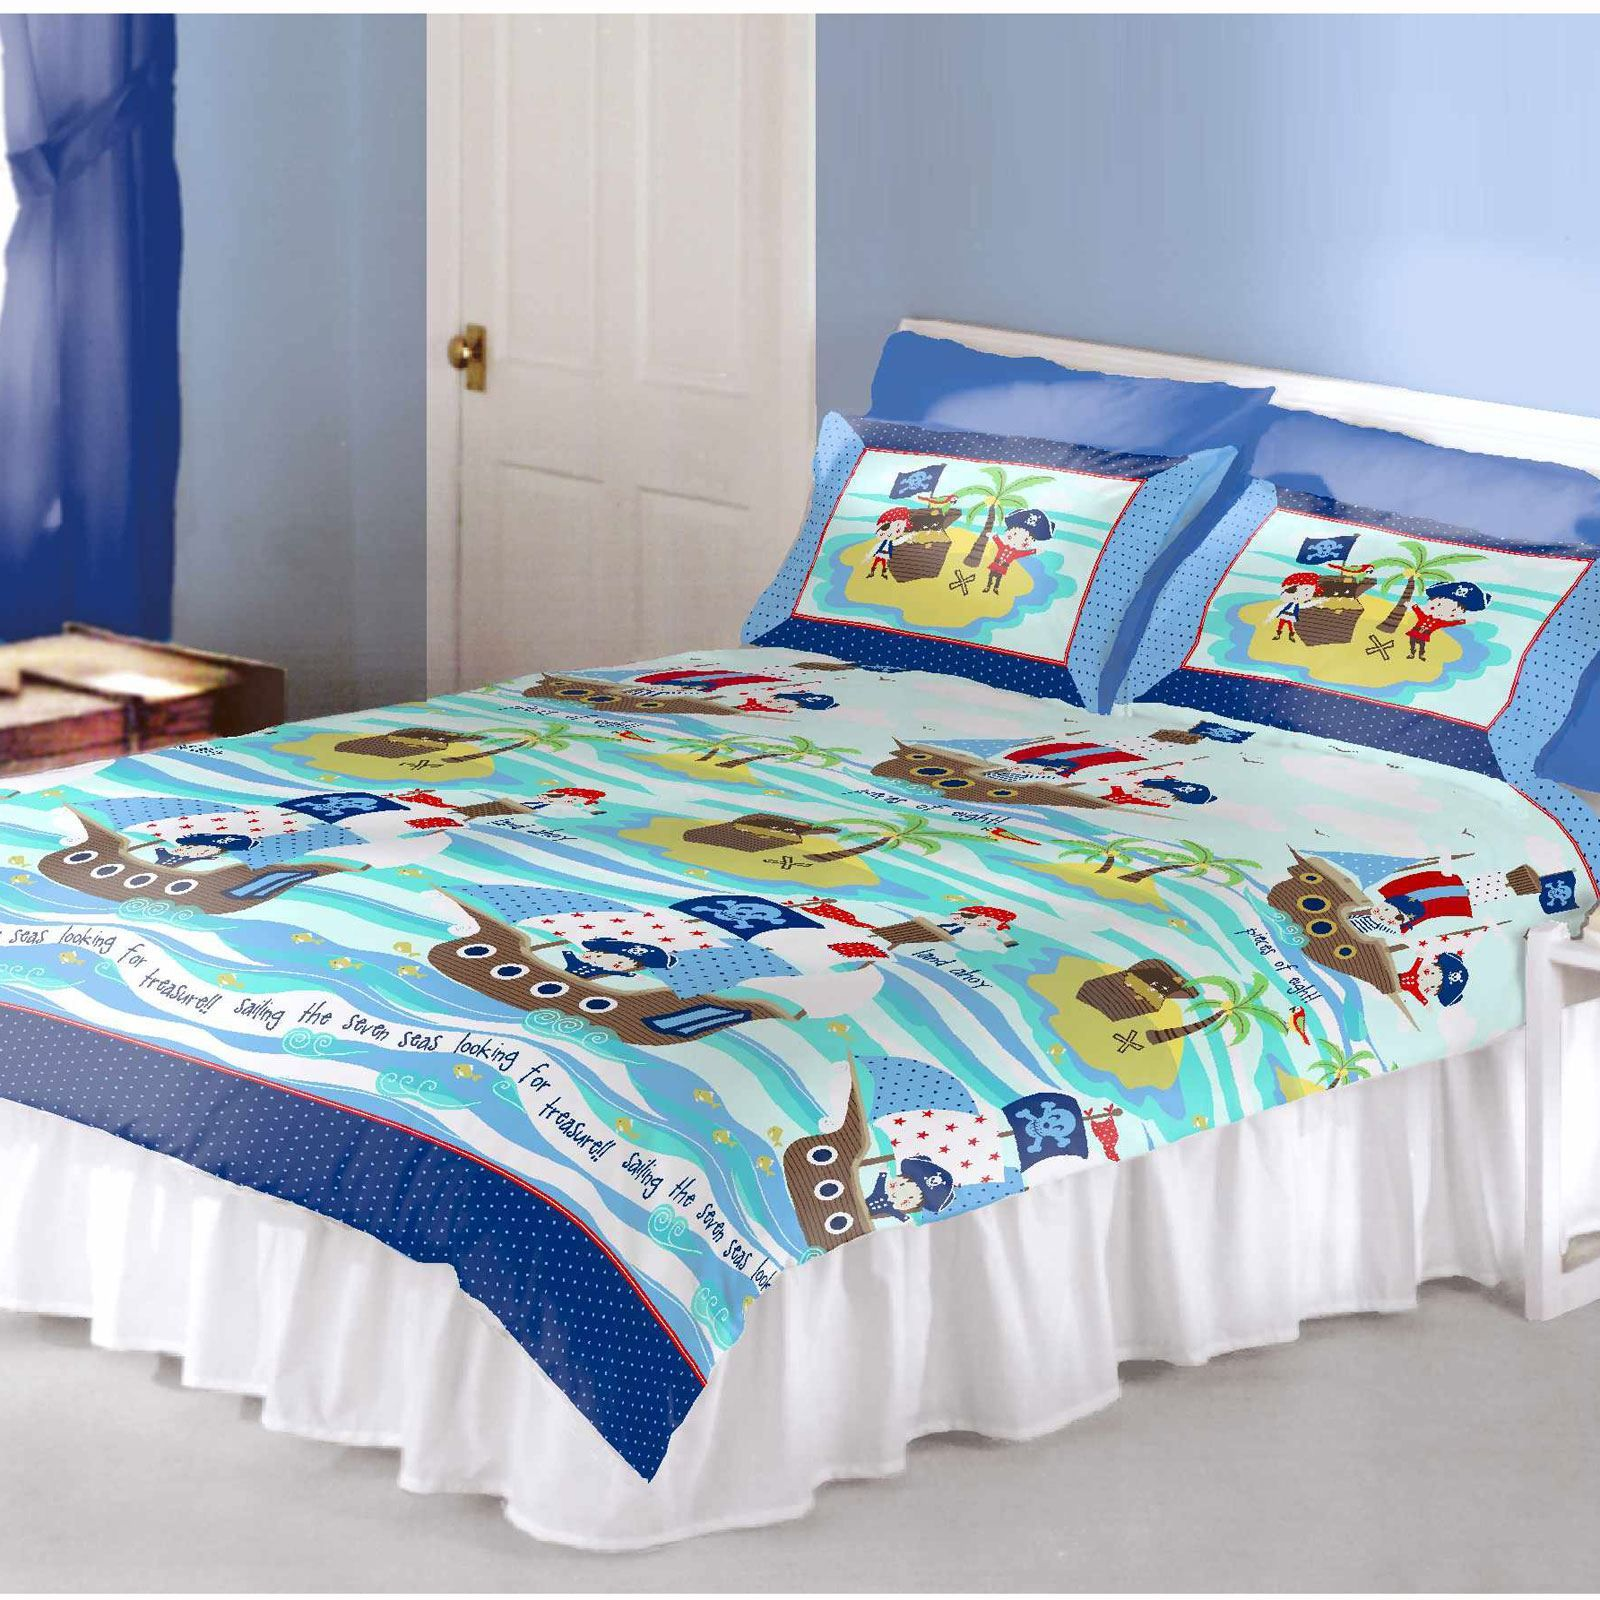 Seven Seas Pirates Bedding Bedroom Accessories Duvet